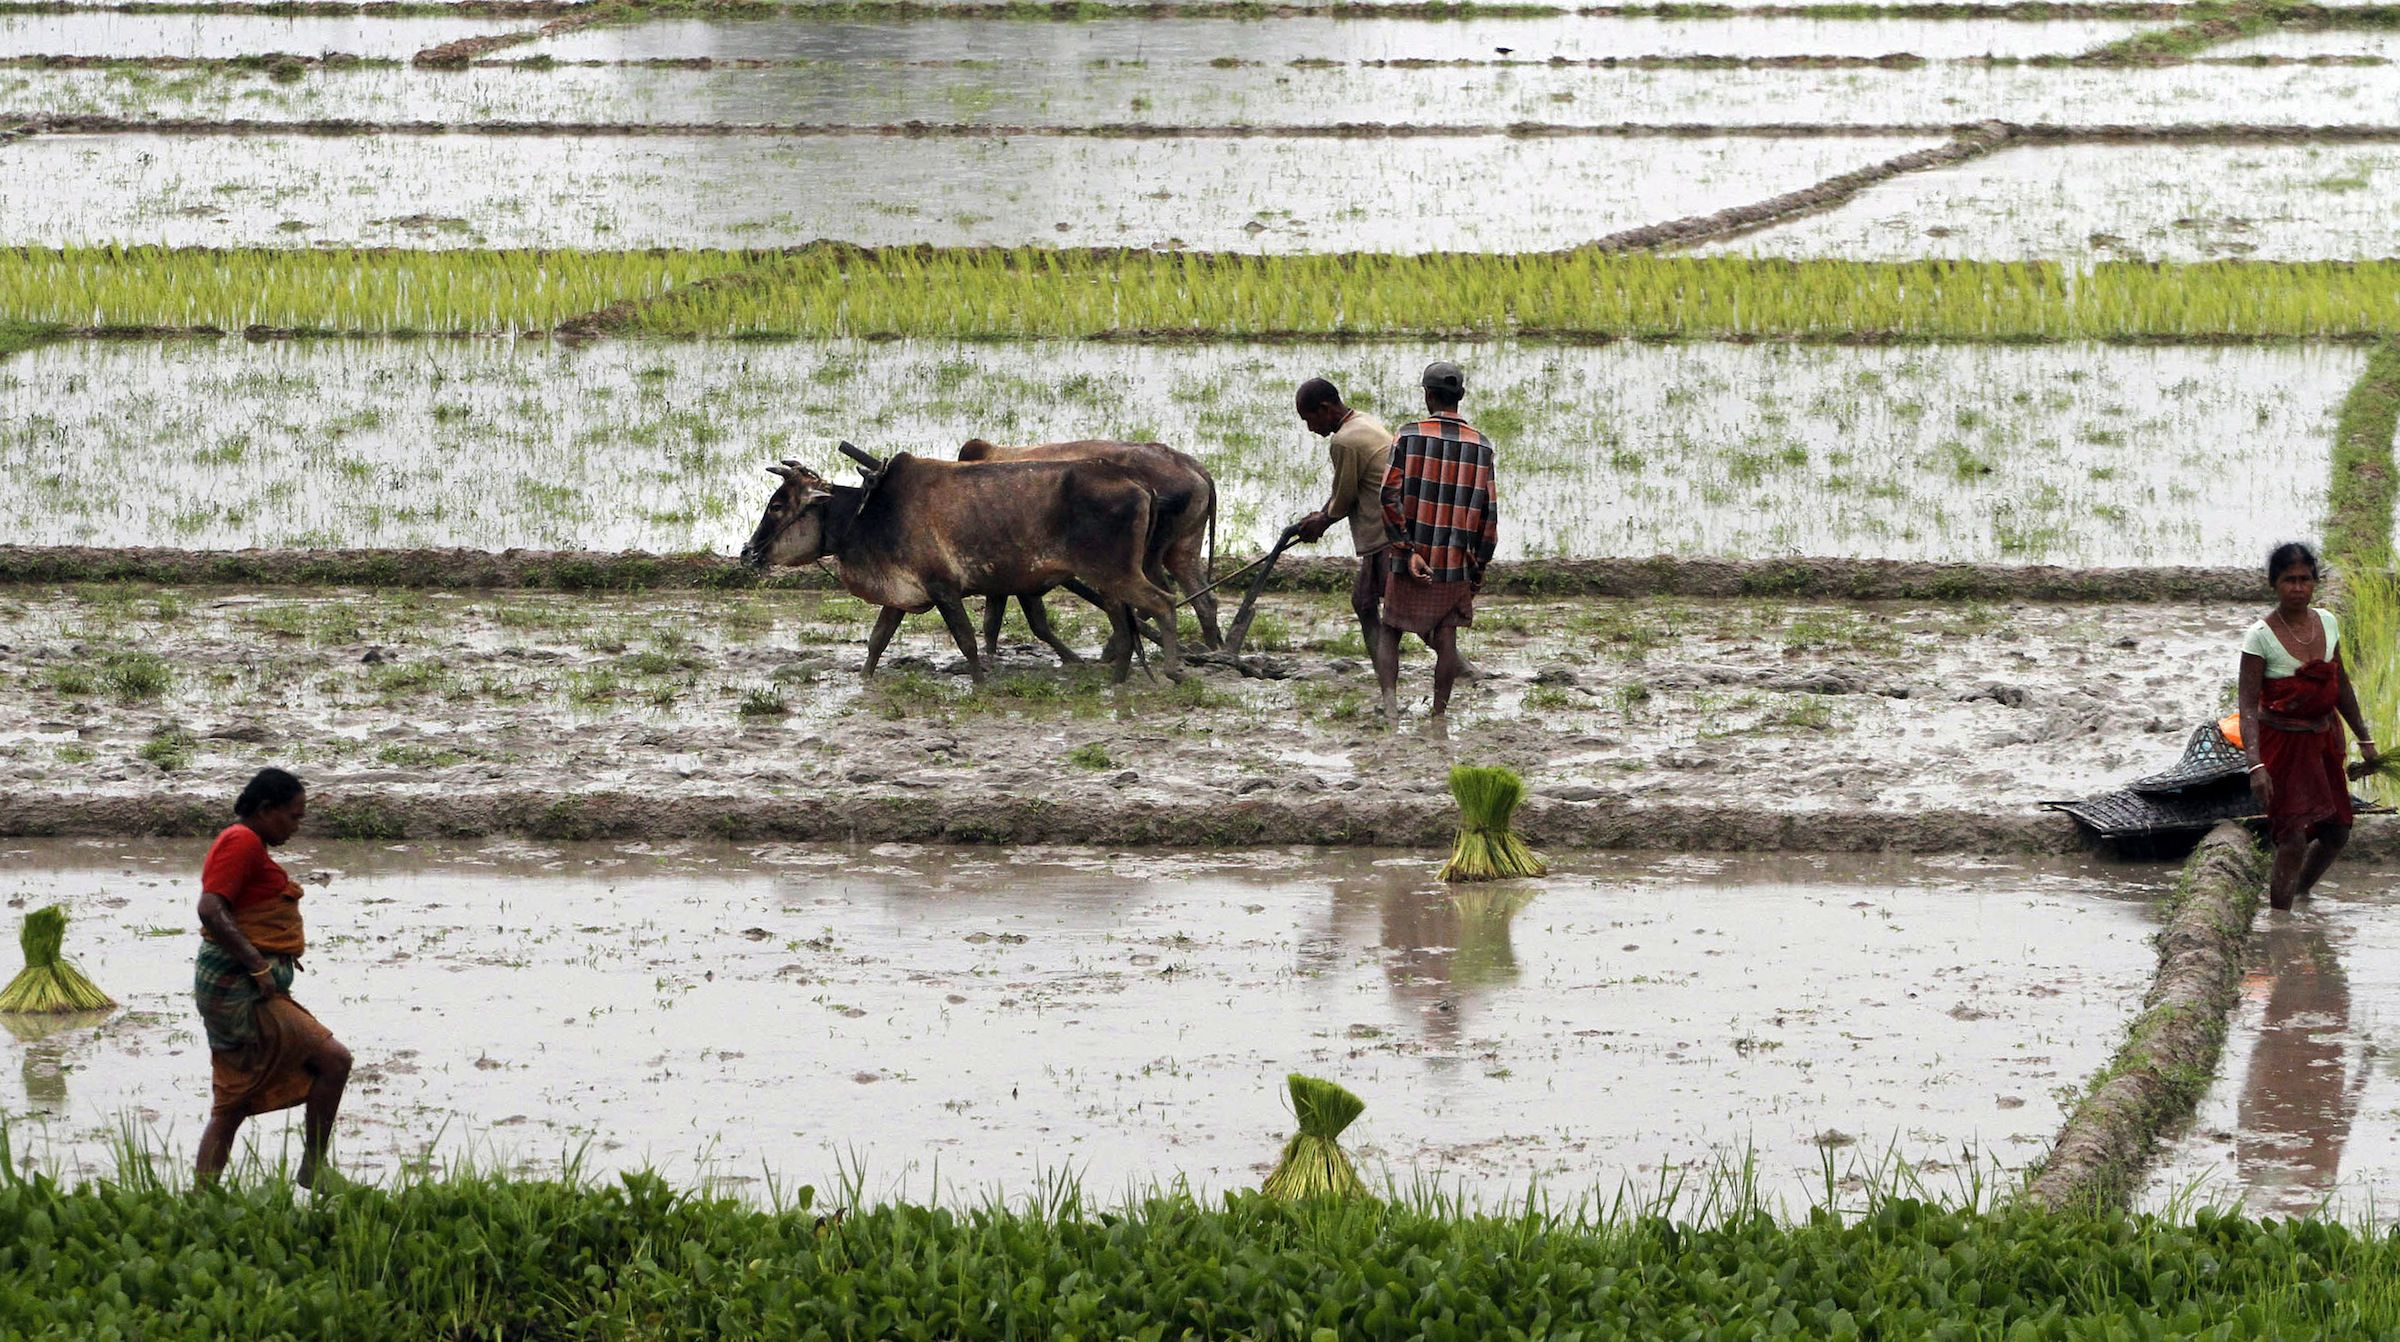 Farmers plough a paddy field in Kokrajhar, about 225 kilometers (140 miles) west of Gauhati, India, Wednesday, July 21, 2010. With the arrival of monsoon rains, farming activity has resumed in the paddy fields. ( AP Photo/Anupam Nath)